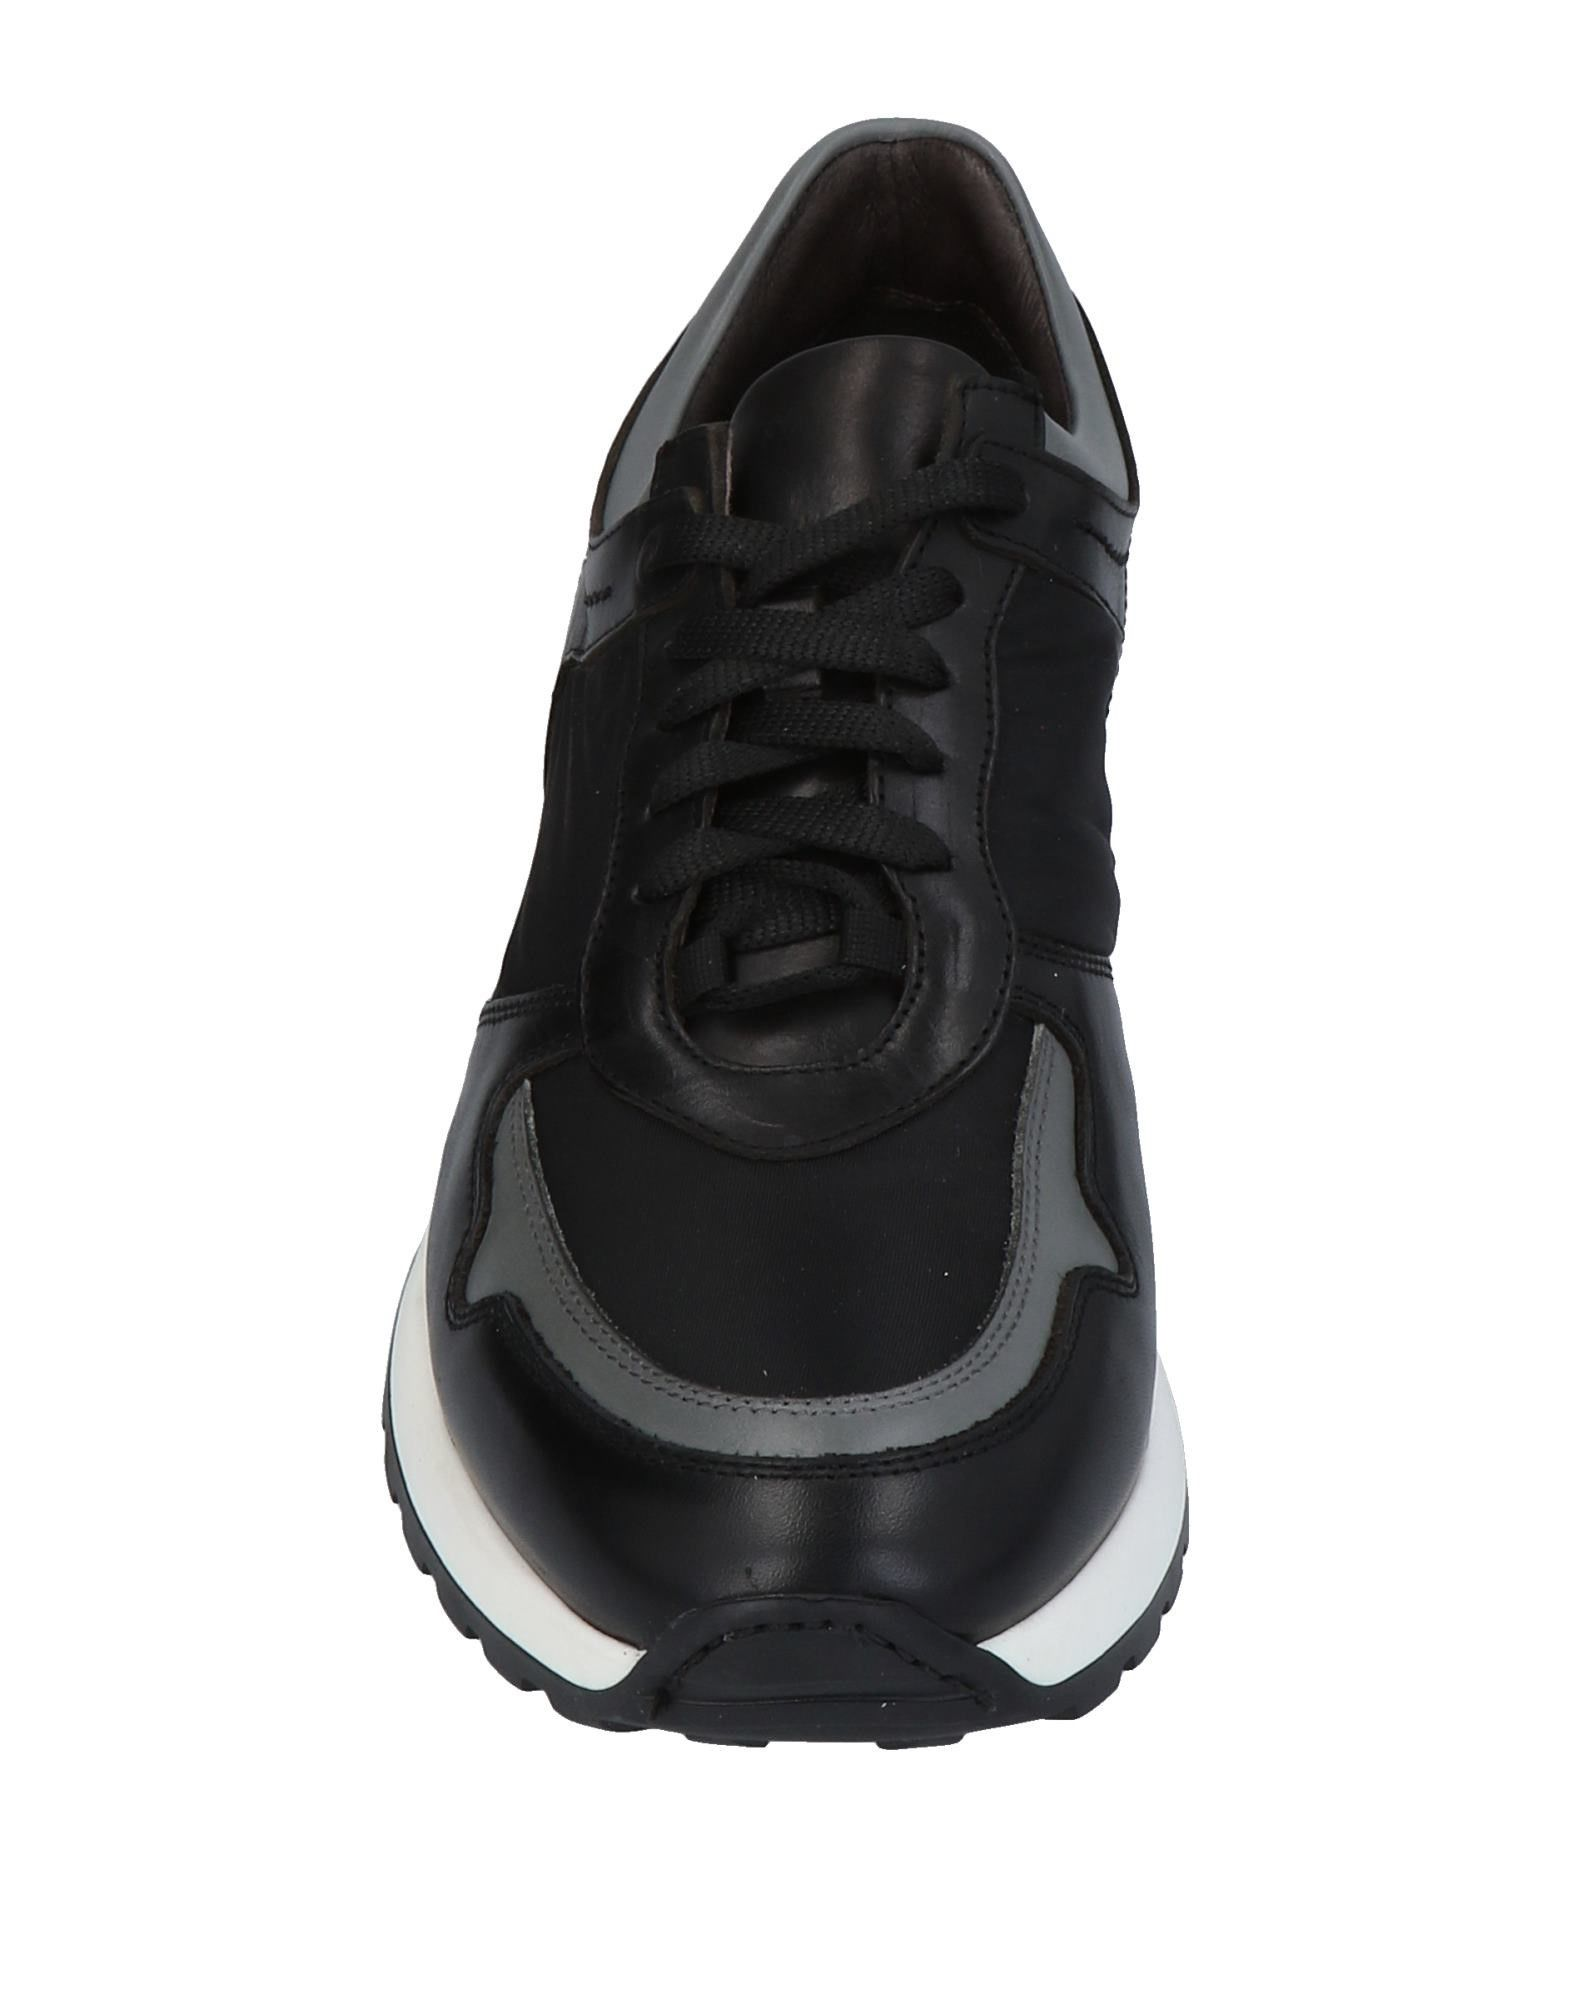 Gianfranco Gianfranco Gianfranco Lattanzi Sneakers Herren  11453913SI 5e5867